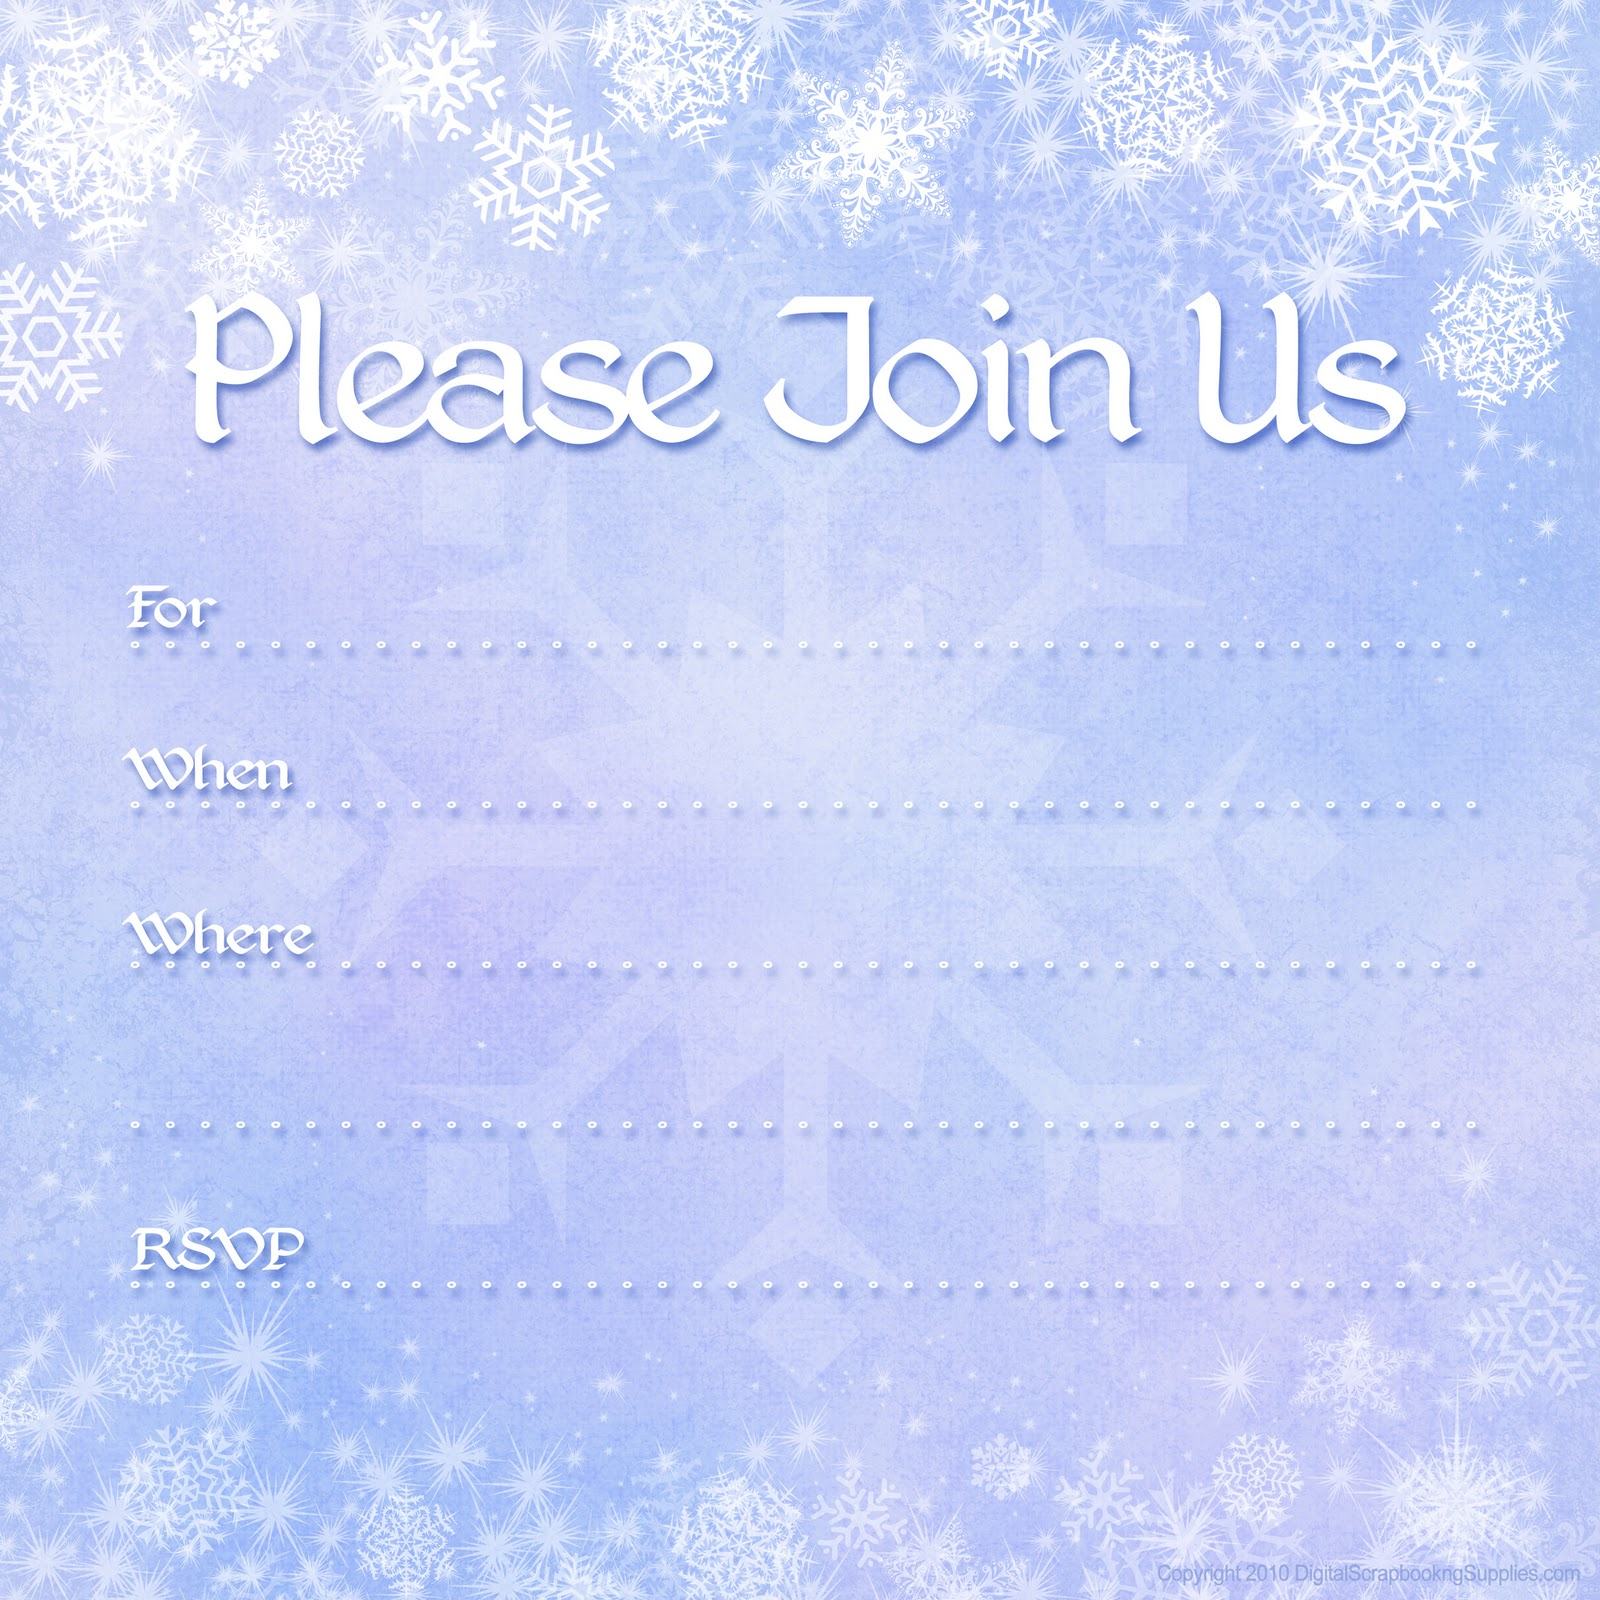 winter invitation templates free - Ideal.vistalist.co